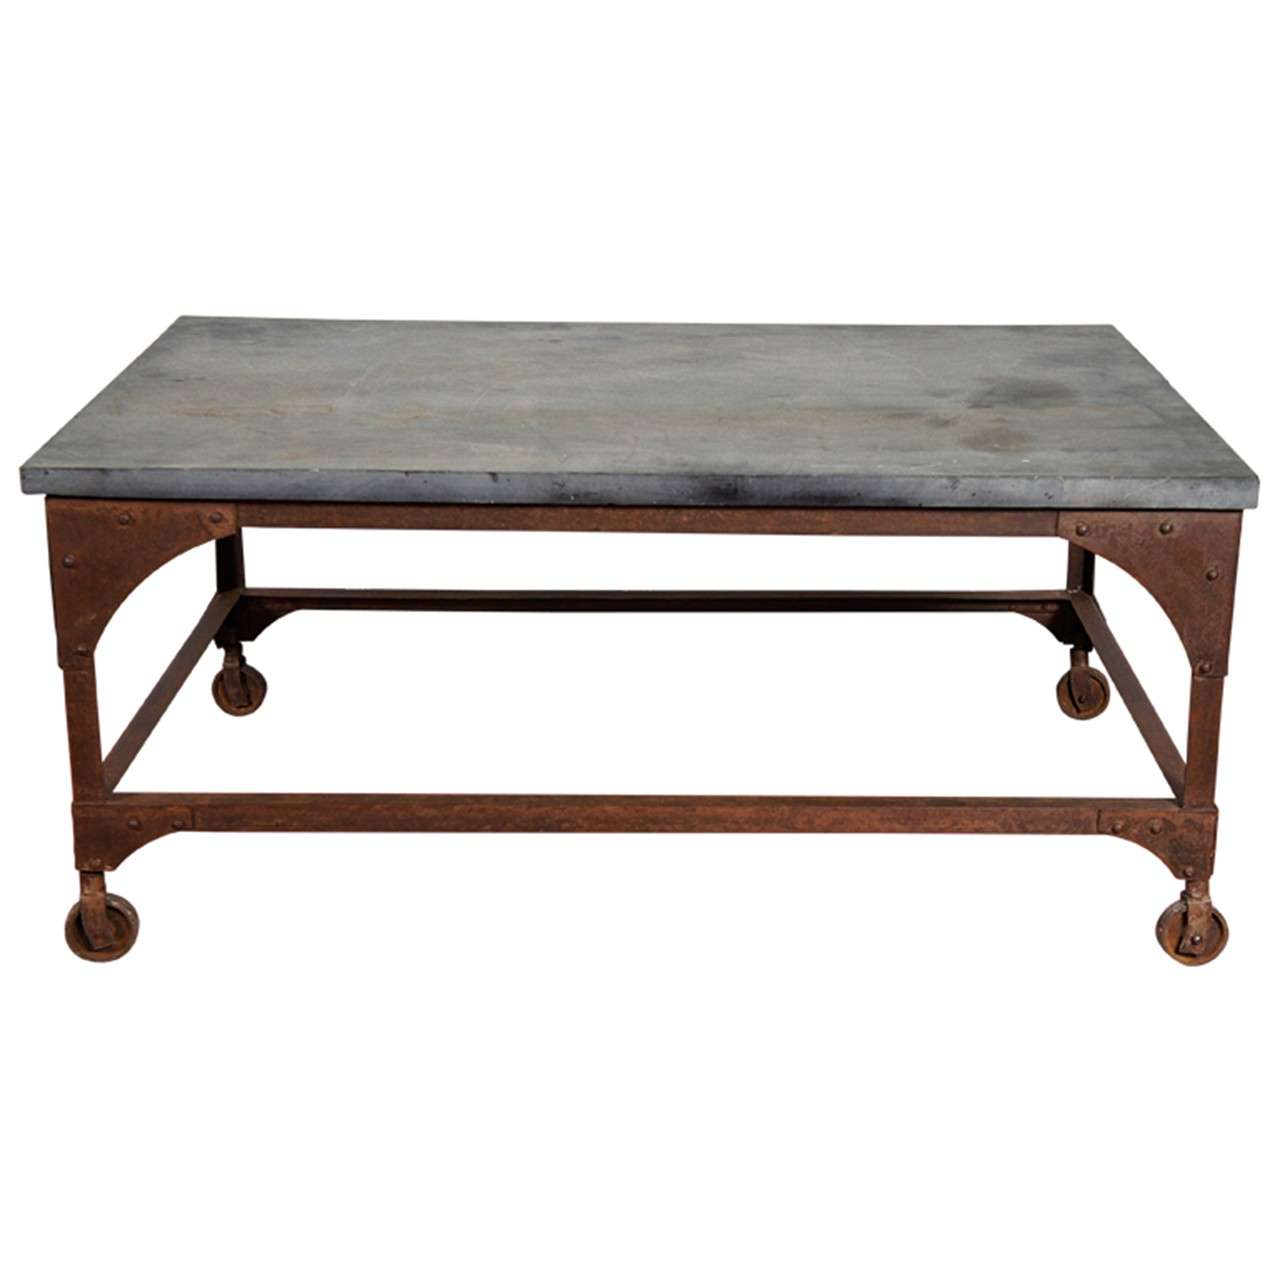 Industrial belgian blue stone and iron coffee table at 1stdibs for Coffee tables zara home